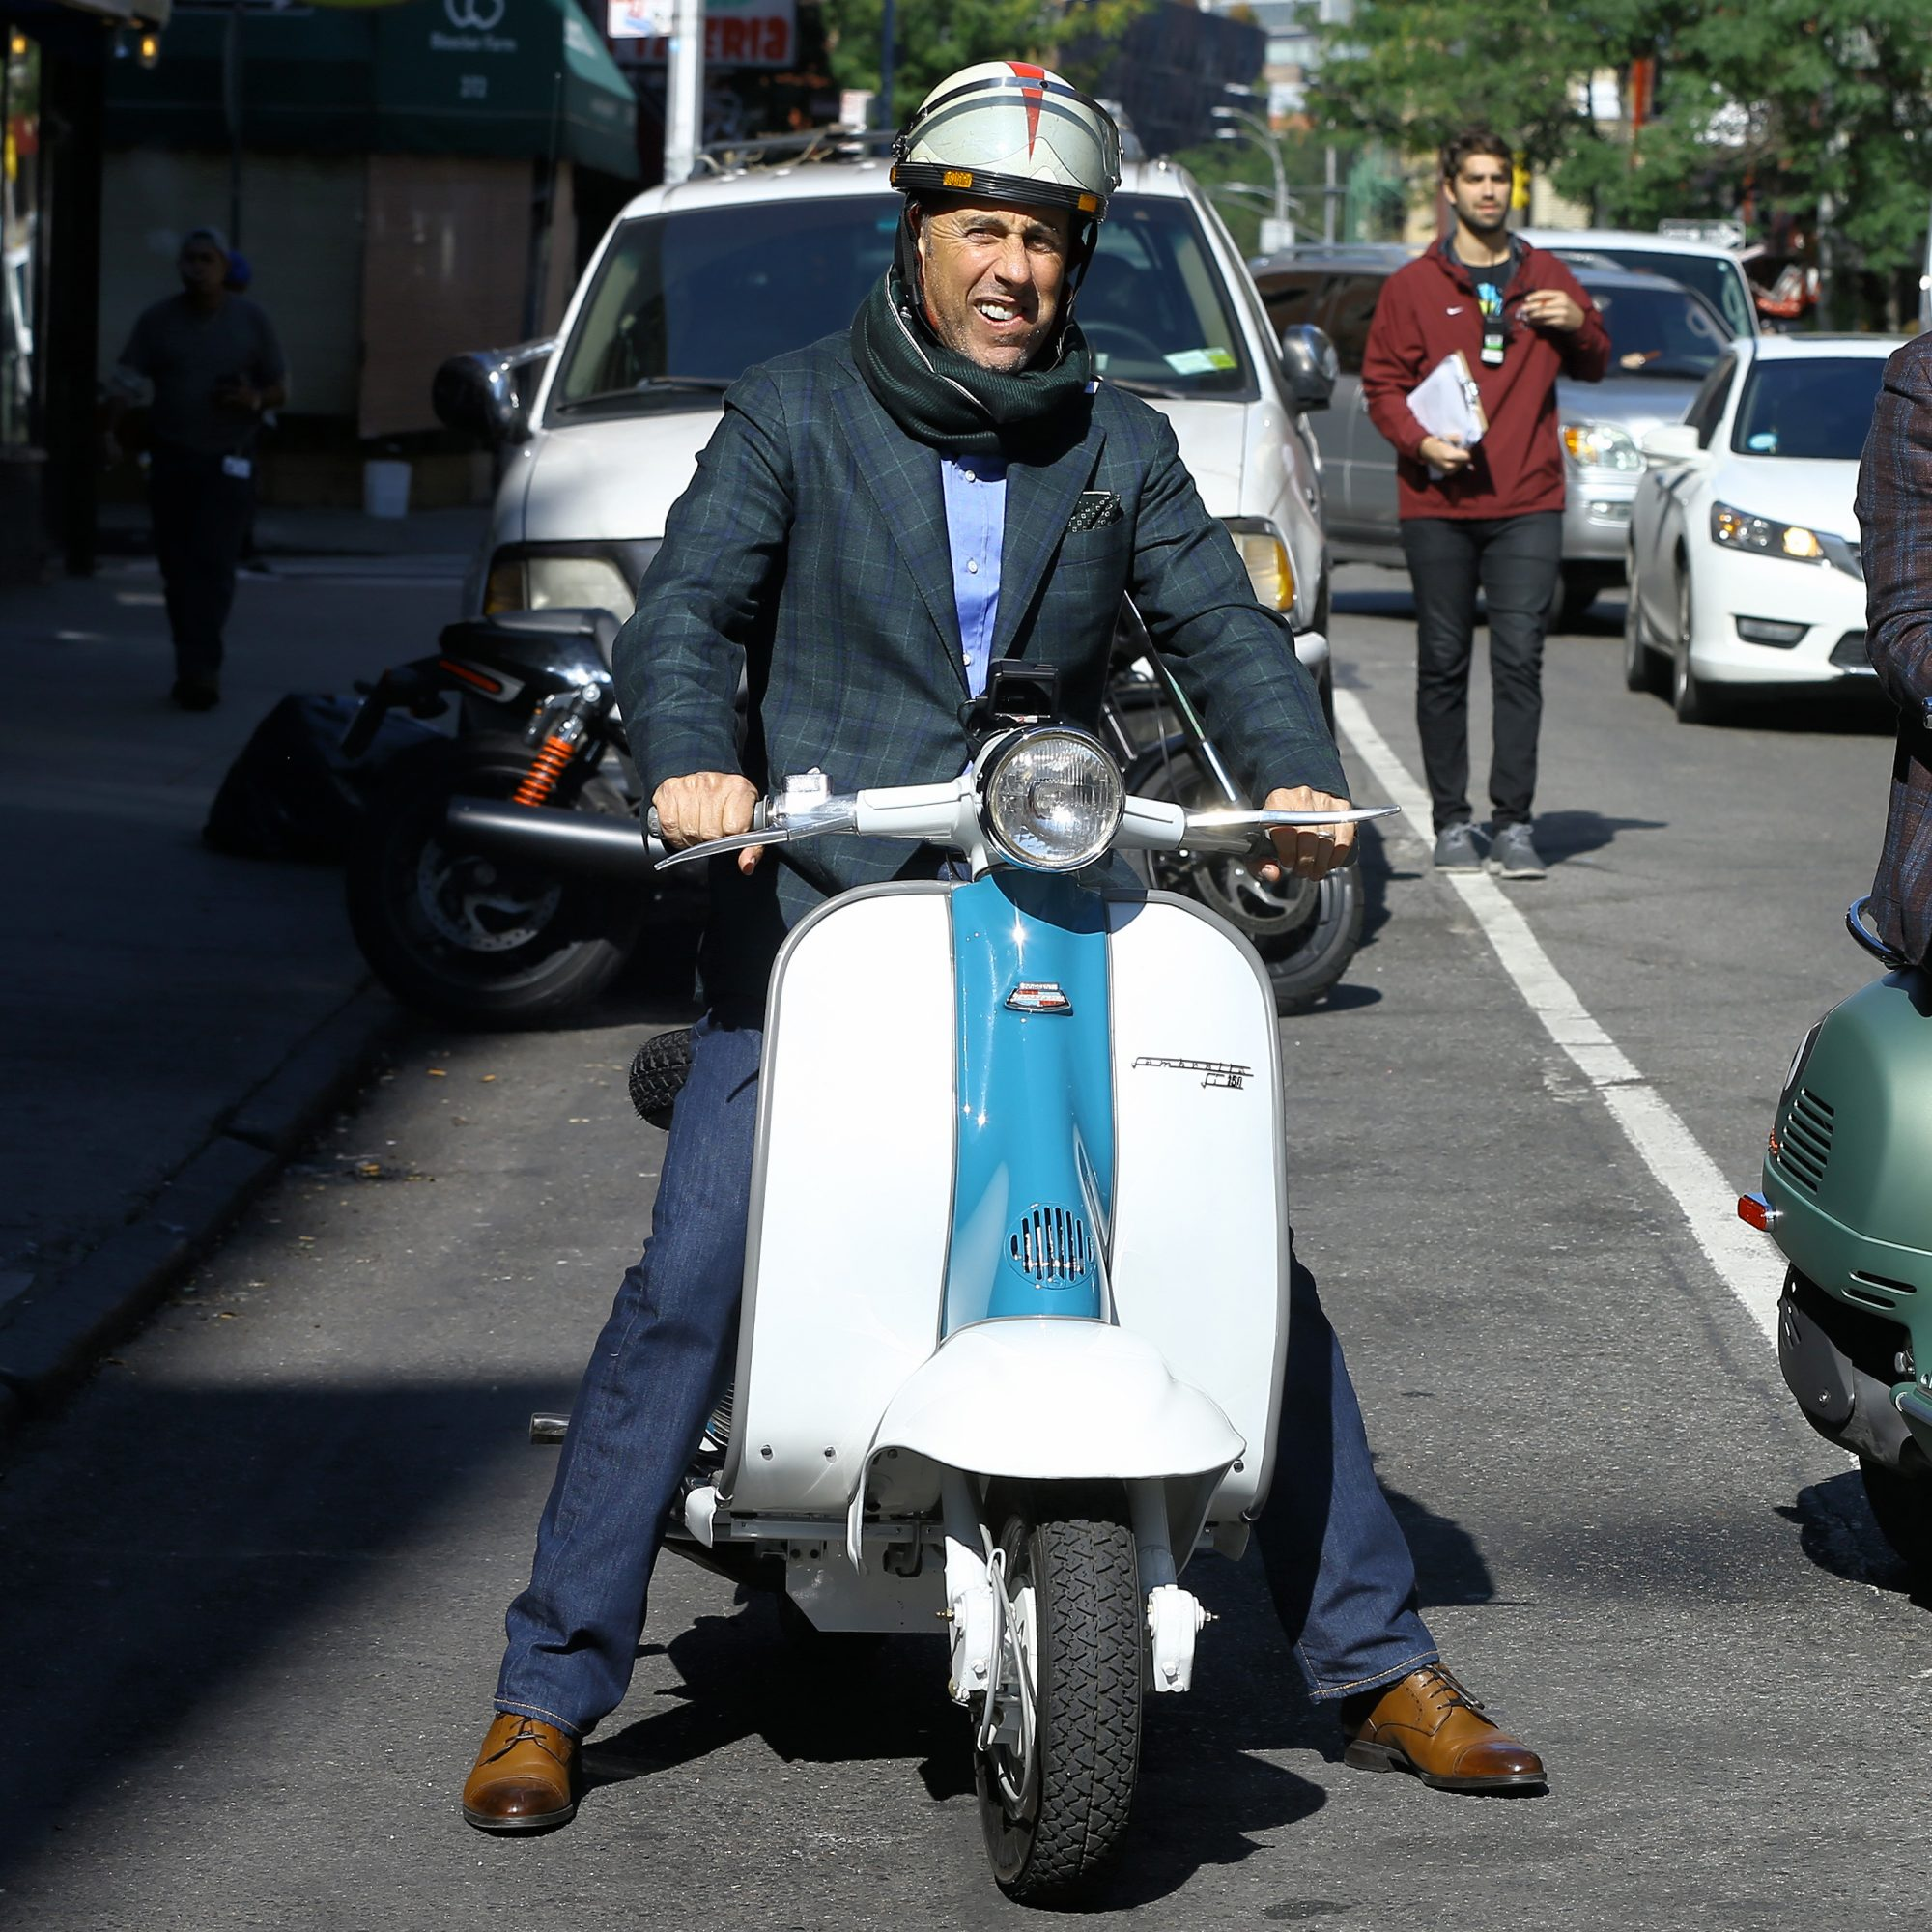 Comedians Jerry Seinfeld and Sebastian Maniscalco ride Vespa scooters while filming 'Coffee with Comedians' on Bleecker Street in New York City, New York on October 17,  2018.